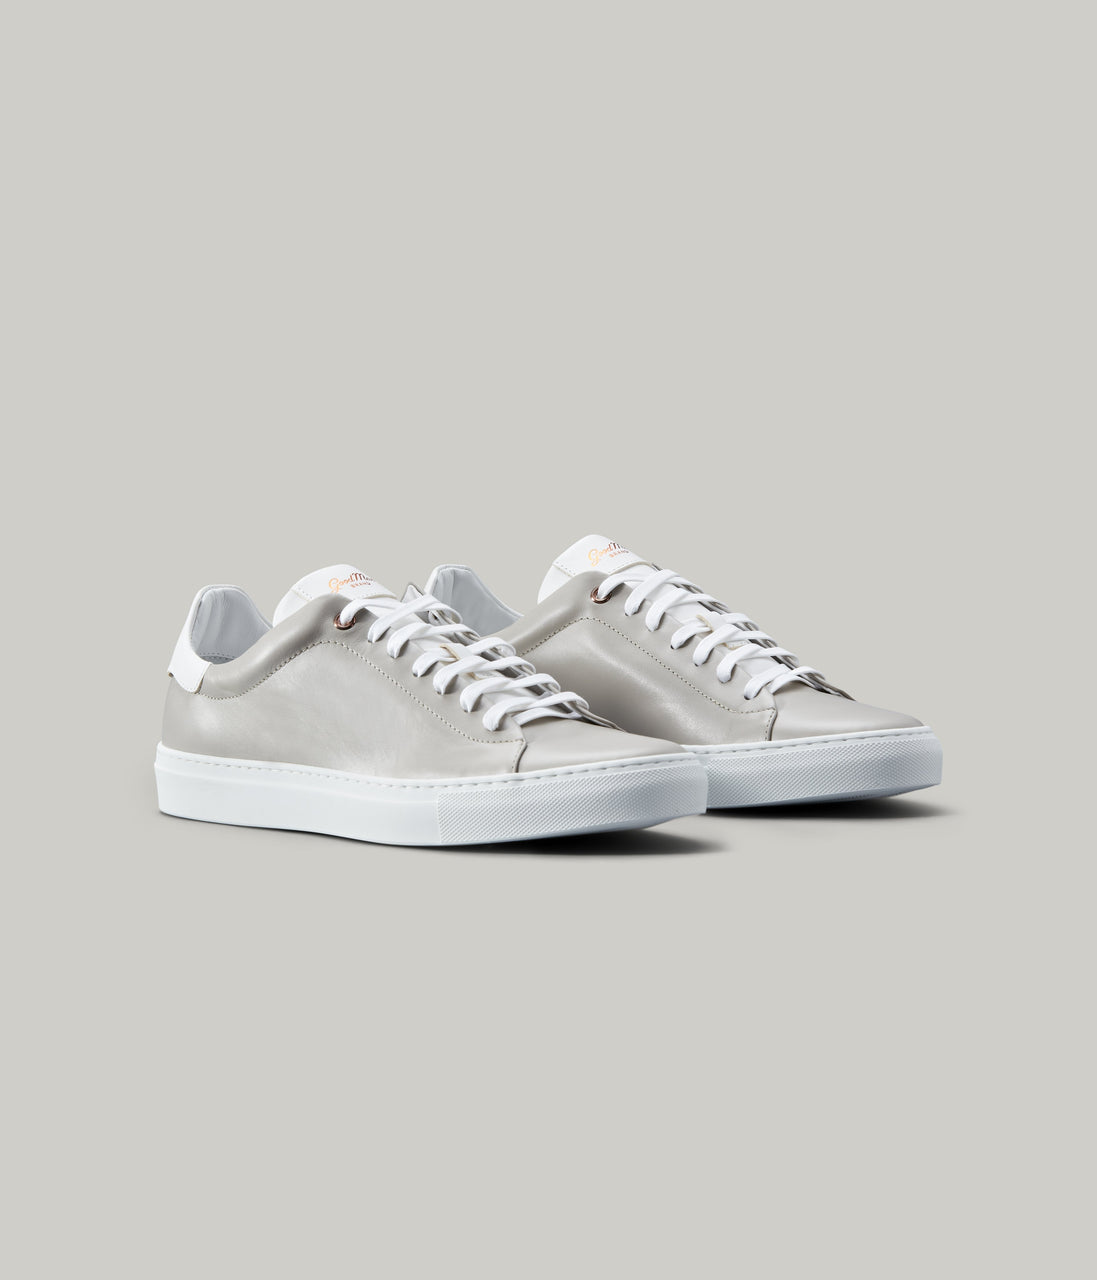 Legend Lo Top Sneaker - Silver / White - Good Man Brand - Legend Lo Top Sneaker - Silver / White